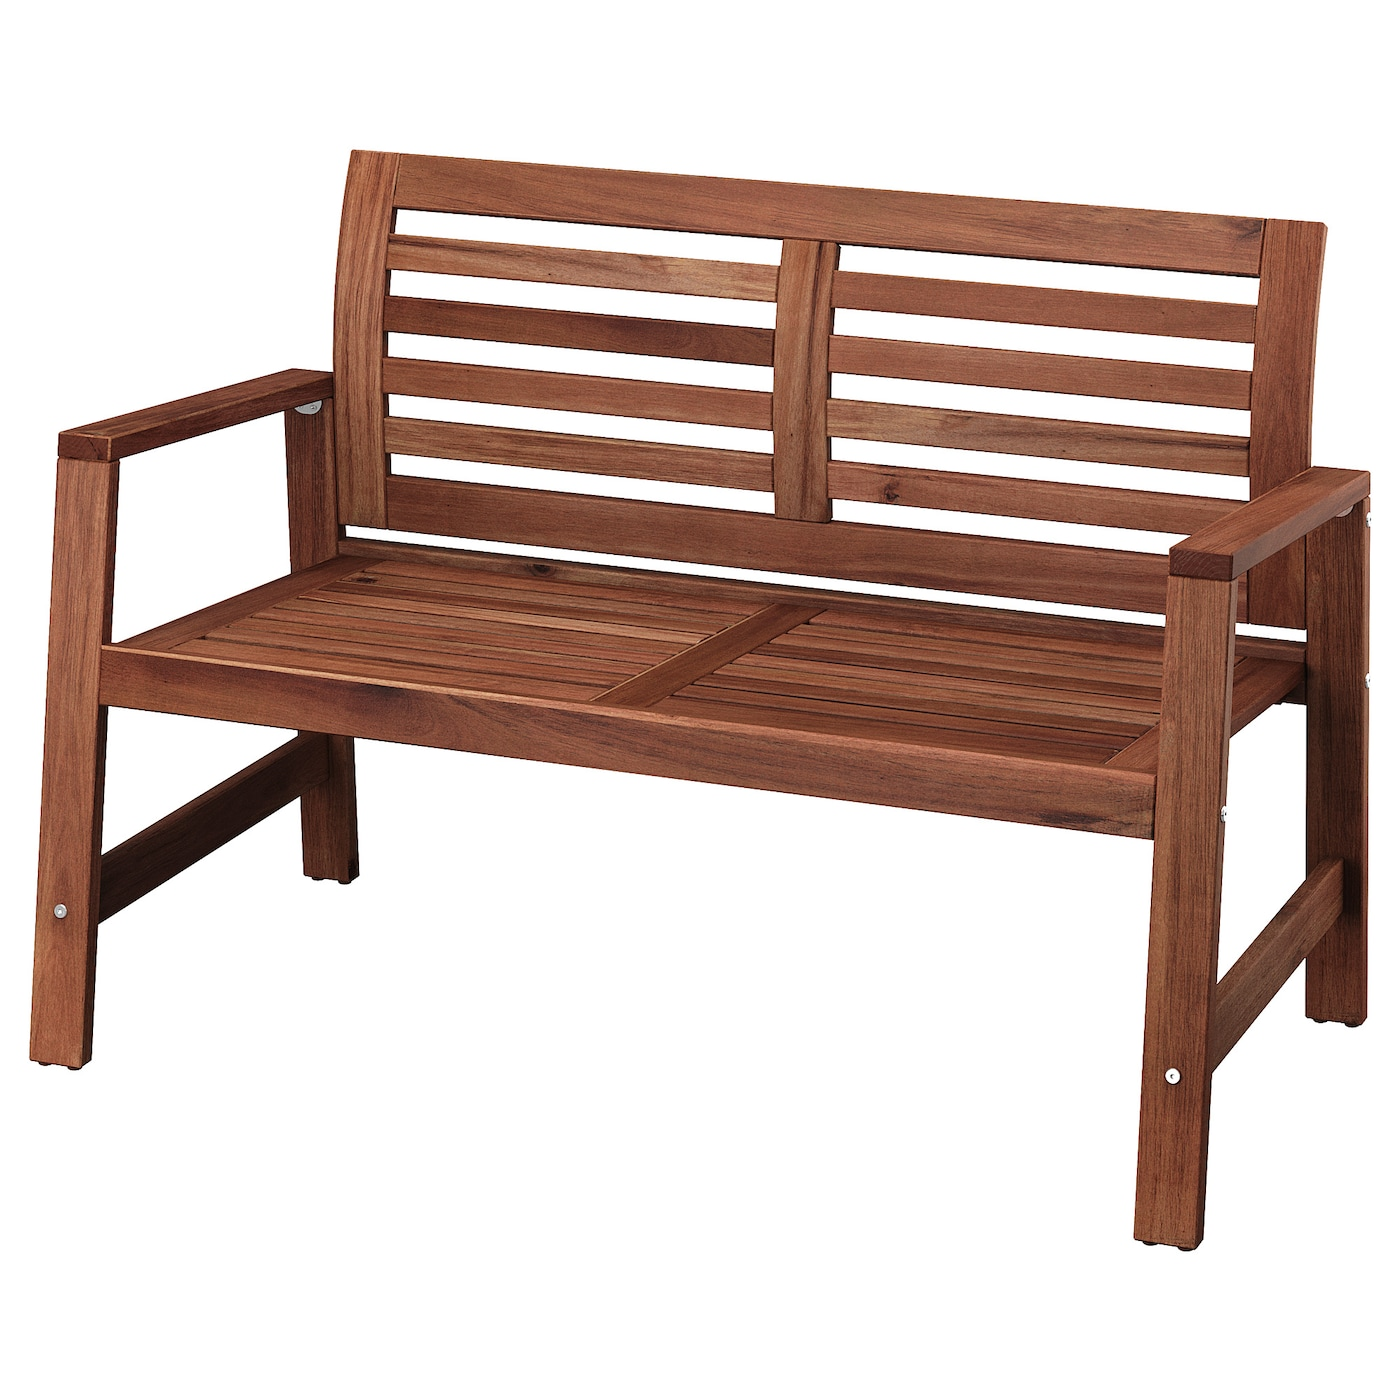 Ikea Applaro Bench With Backrest Outdoor The Curved Back Ensures That You Sit Comfortably